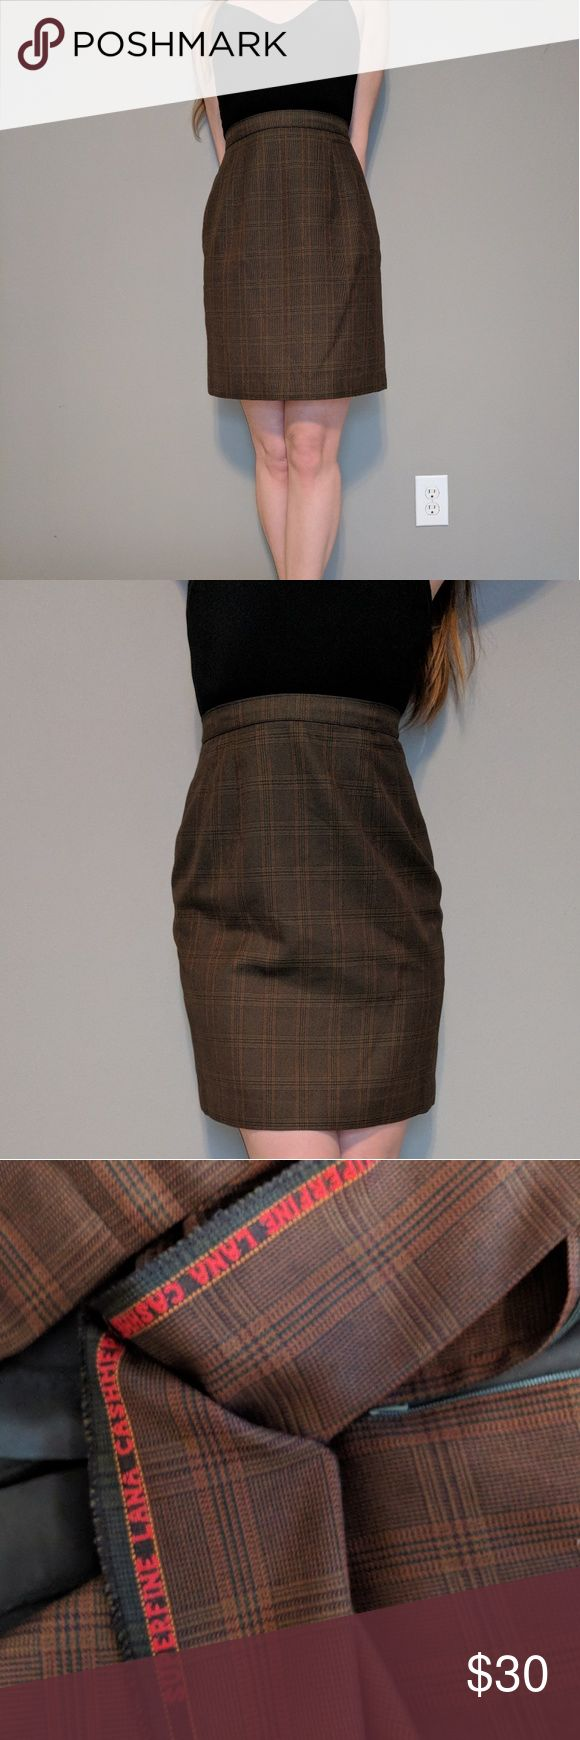 "VTG 60's Cashmere Tartan Plaid Khaki Pencil Skirt Amazing condition! Repurposed handmade vintage 1960's olive colored tartan plaid wool secretary pencil skirt. High waist. Zips up the back with hook clasp closure. Silky teal inner lining. Just the most perfect color that goes with anything.  Fabric: Superfine Lana Cashmere Color: Olivey brown / Khaki Condition: Excellent. No rips, tears, or stains! No size or brand tags. Stitching reads ""Superfine Lana Cashmere by Donel""  Length: 21"" Waist…"